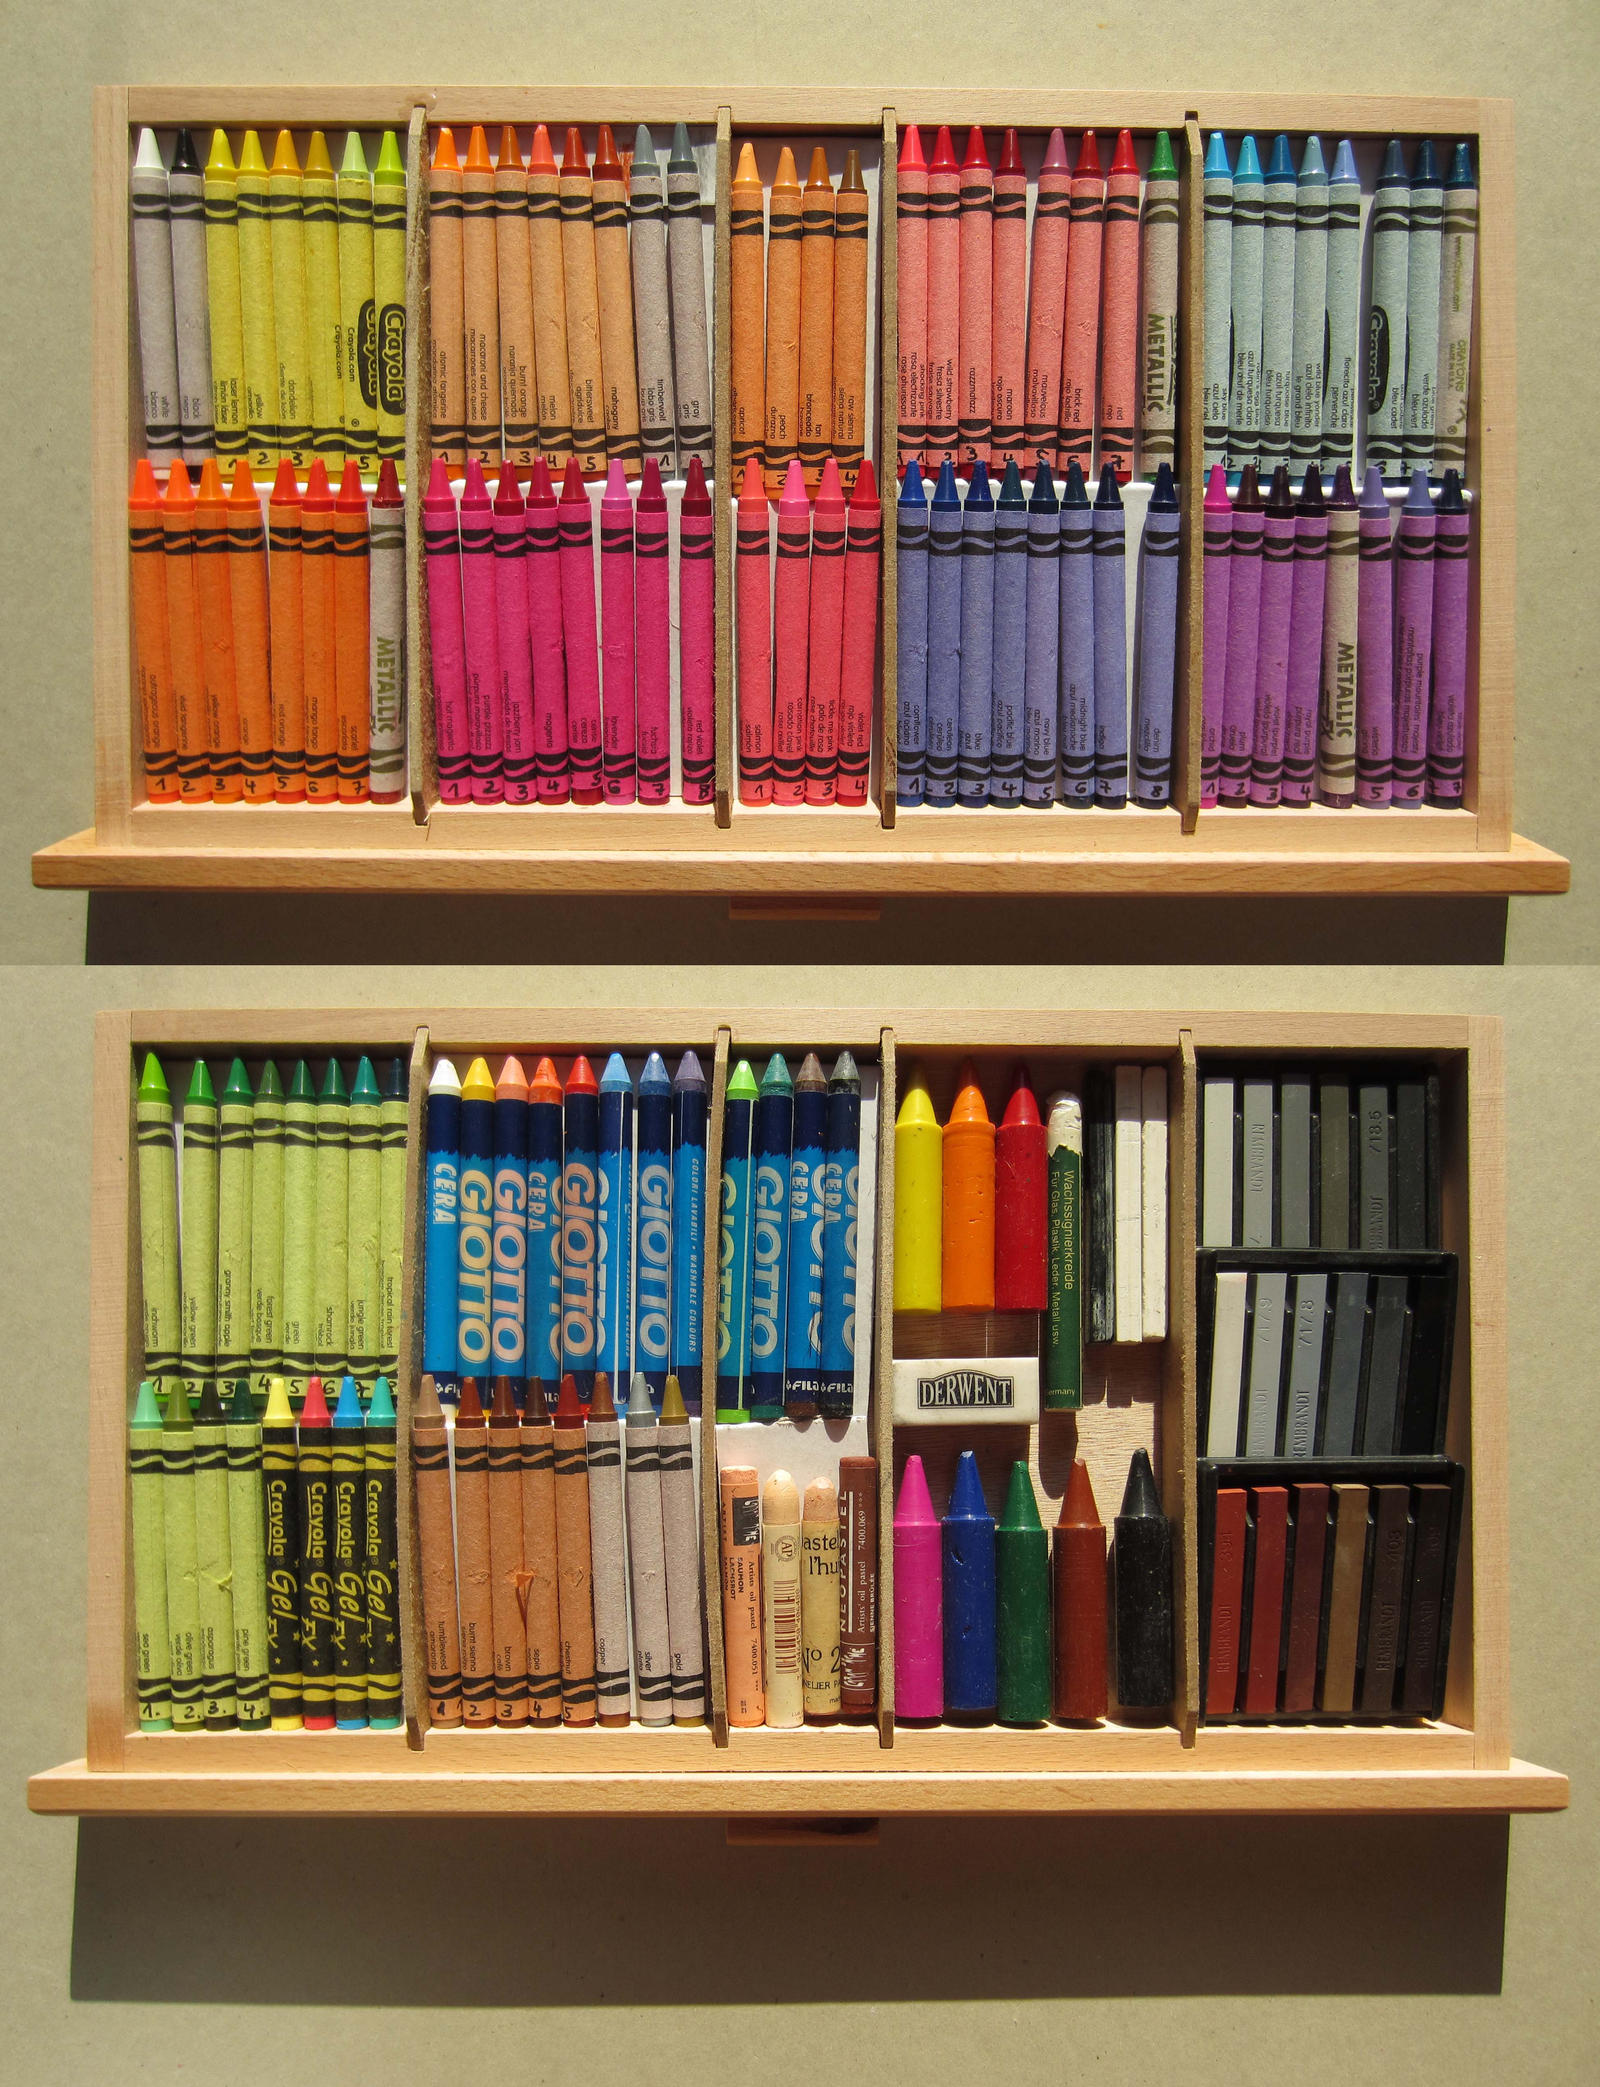 pictures of crayola crayons 96